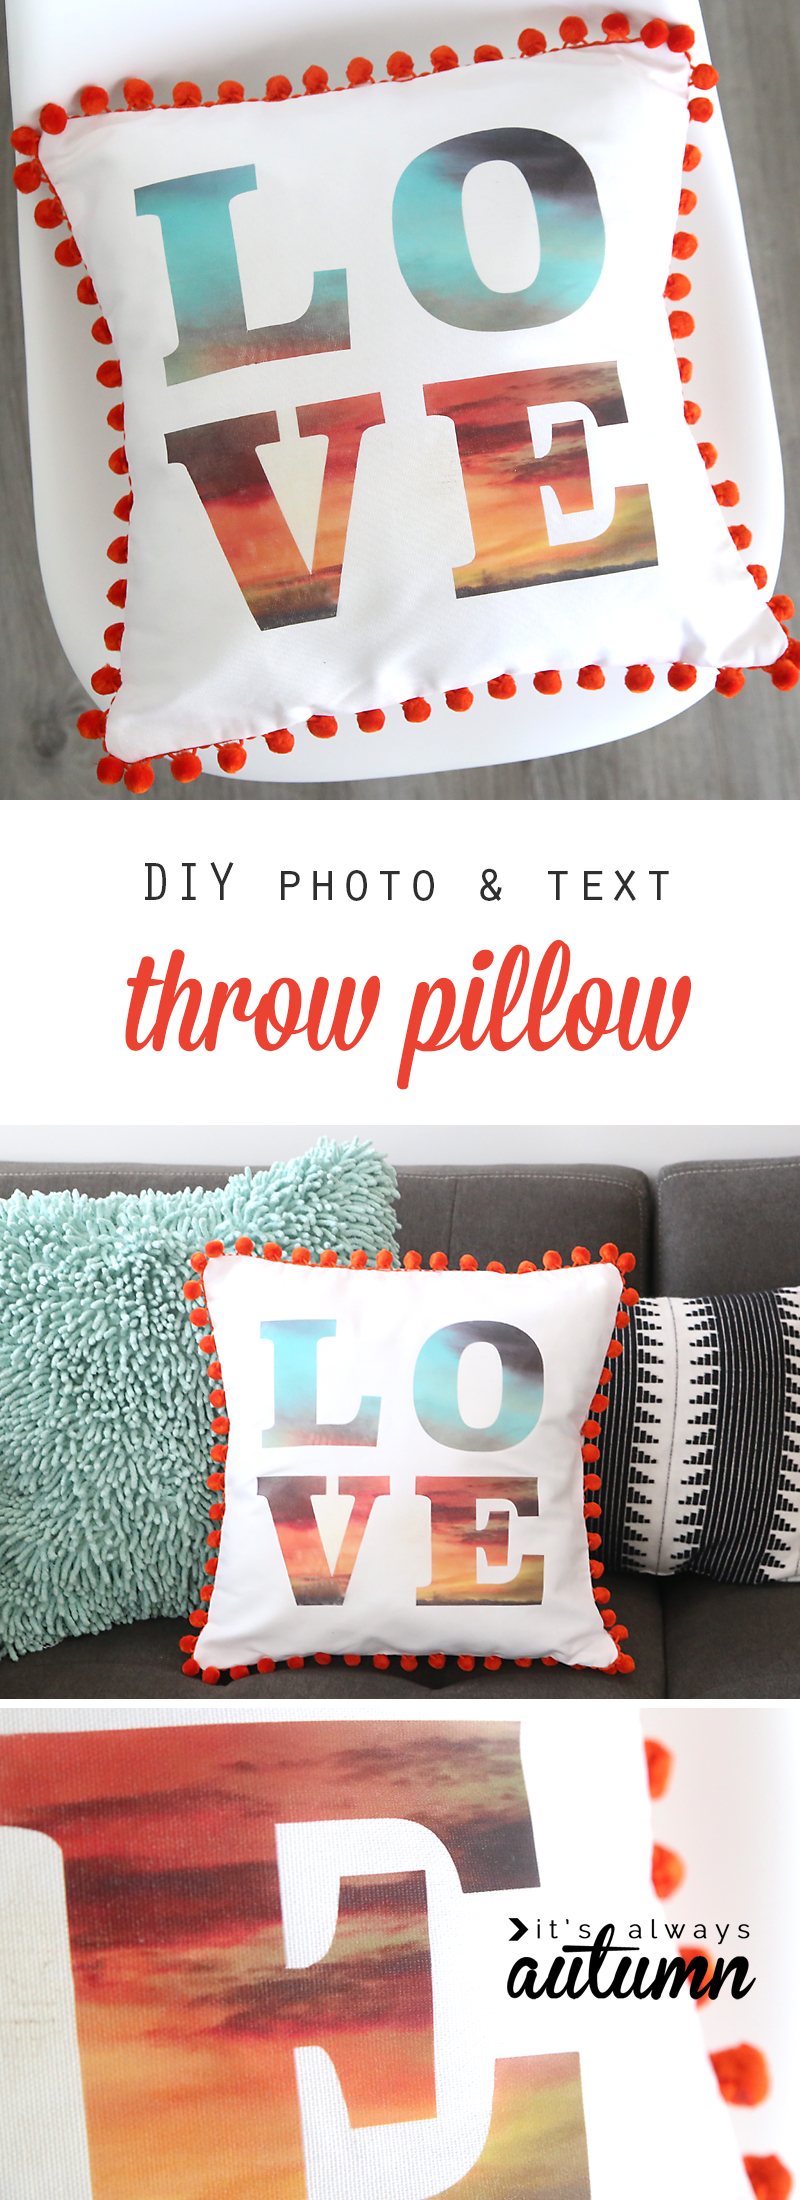 Throw pillow with word LOVE on it and red pom pom trim around the edge